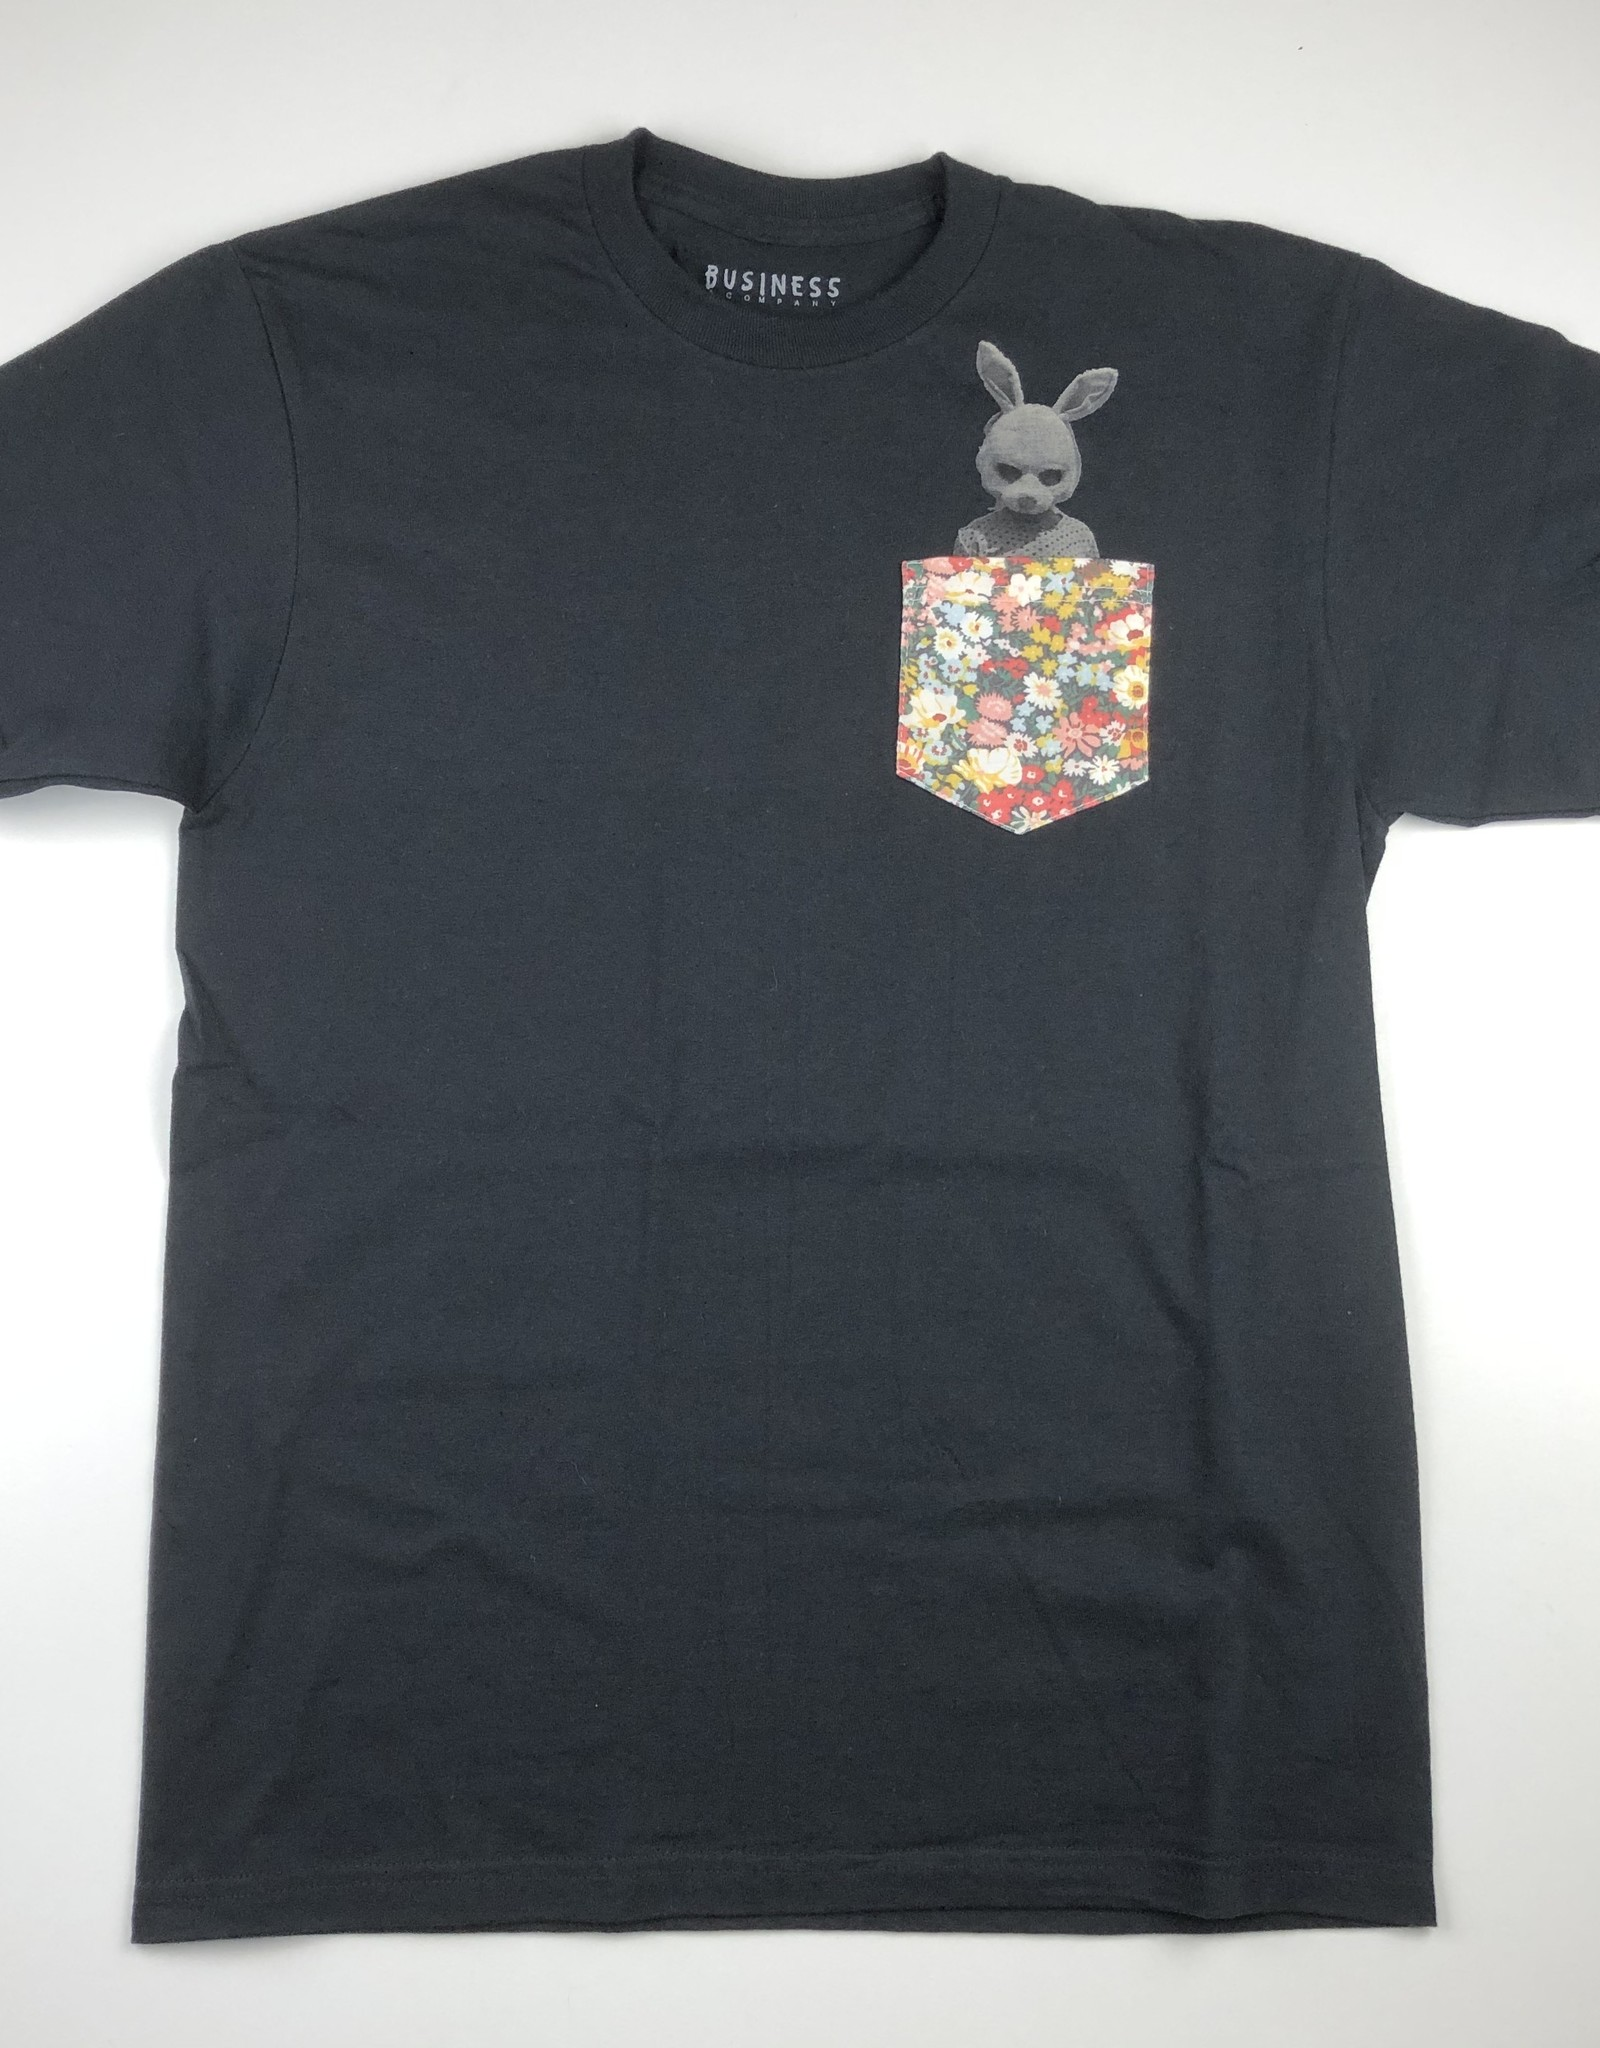 BUSINESS AND COMPANY BUSINESS AND COMPANY BUNNY POCKET S/S TEE